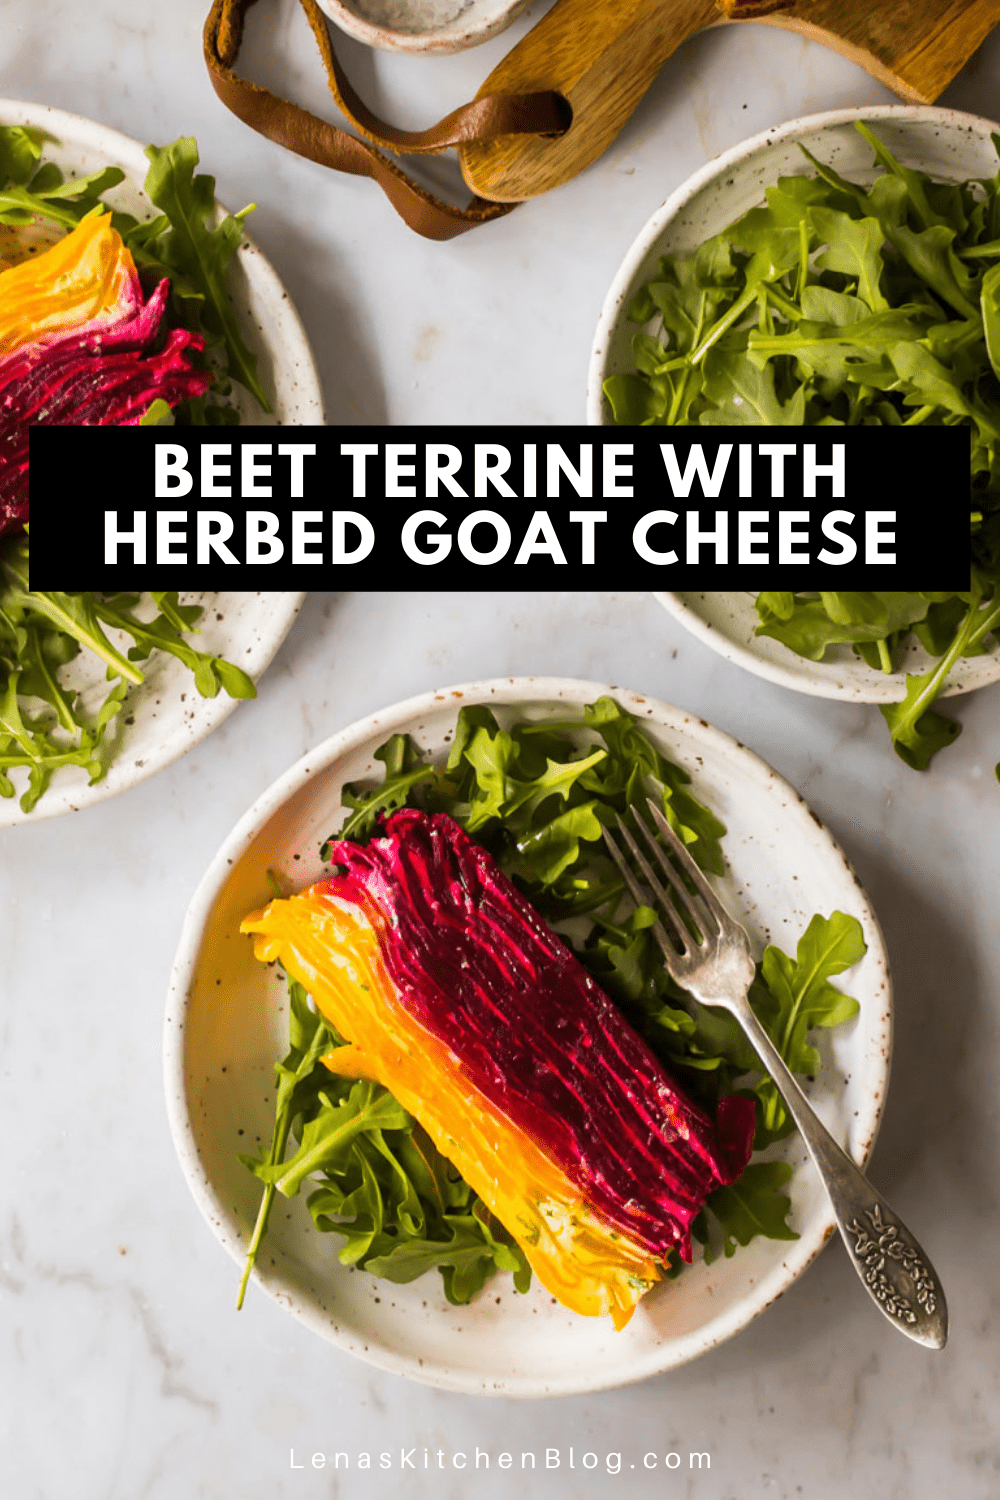 A slice of red and yellow beet terrine on top of arugula